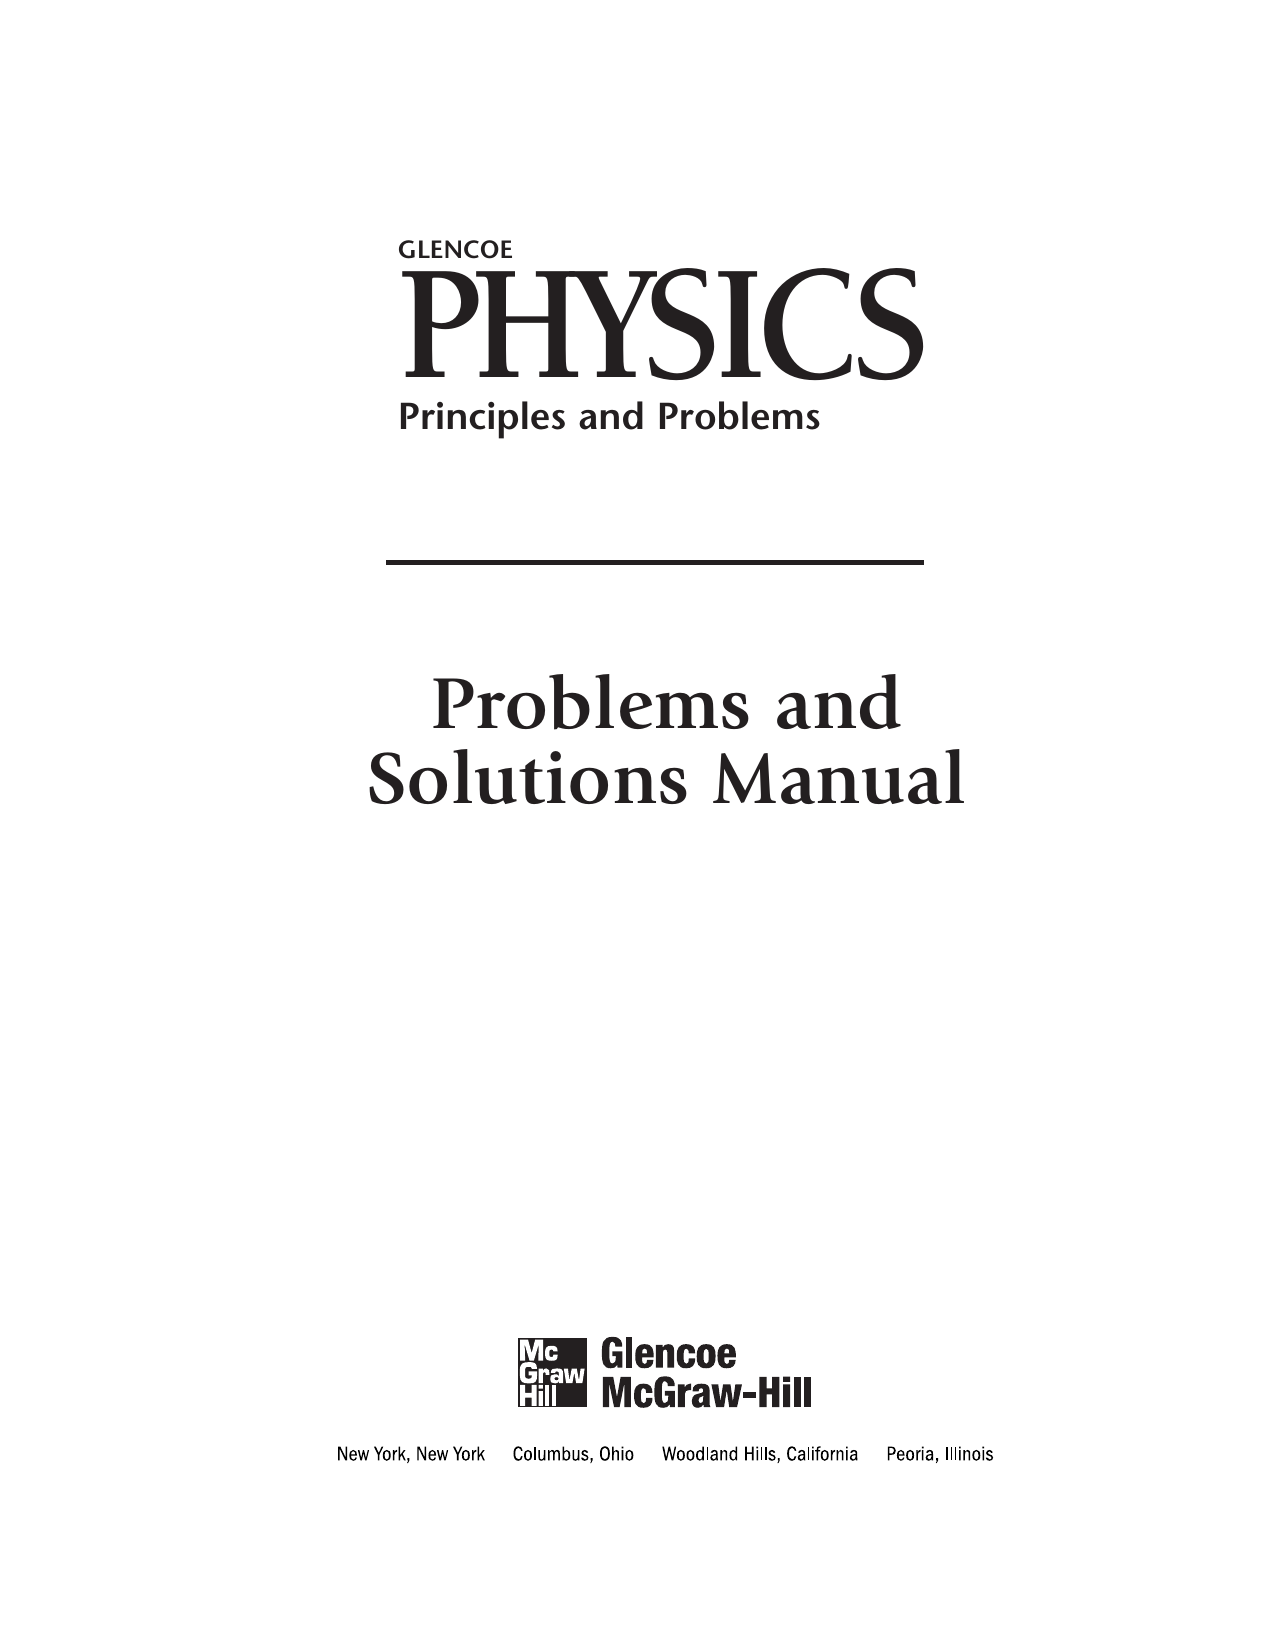 b63ffc5b804 GLENCOE PHYSICS. Principles and Problems. Problems and Solutions Manual